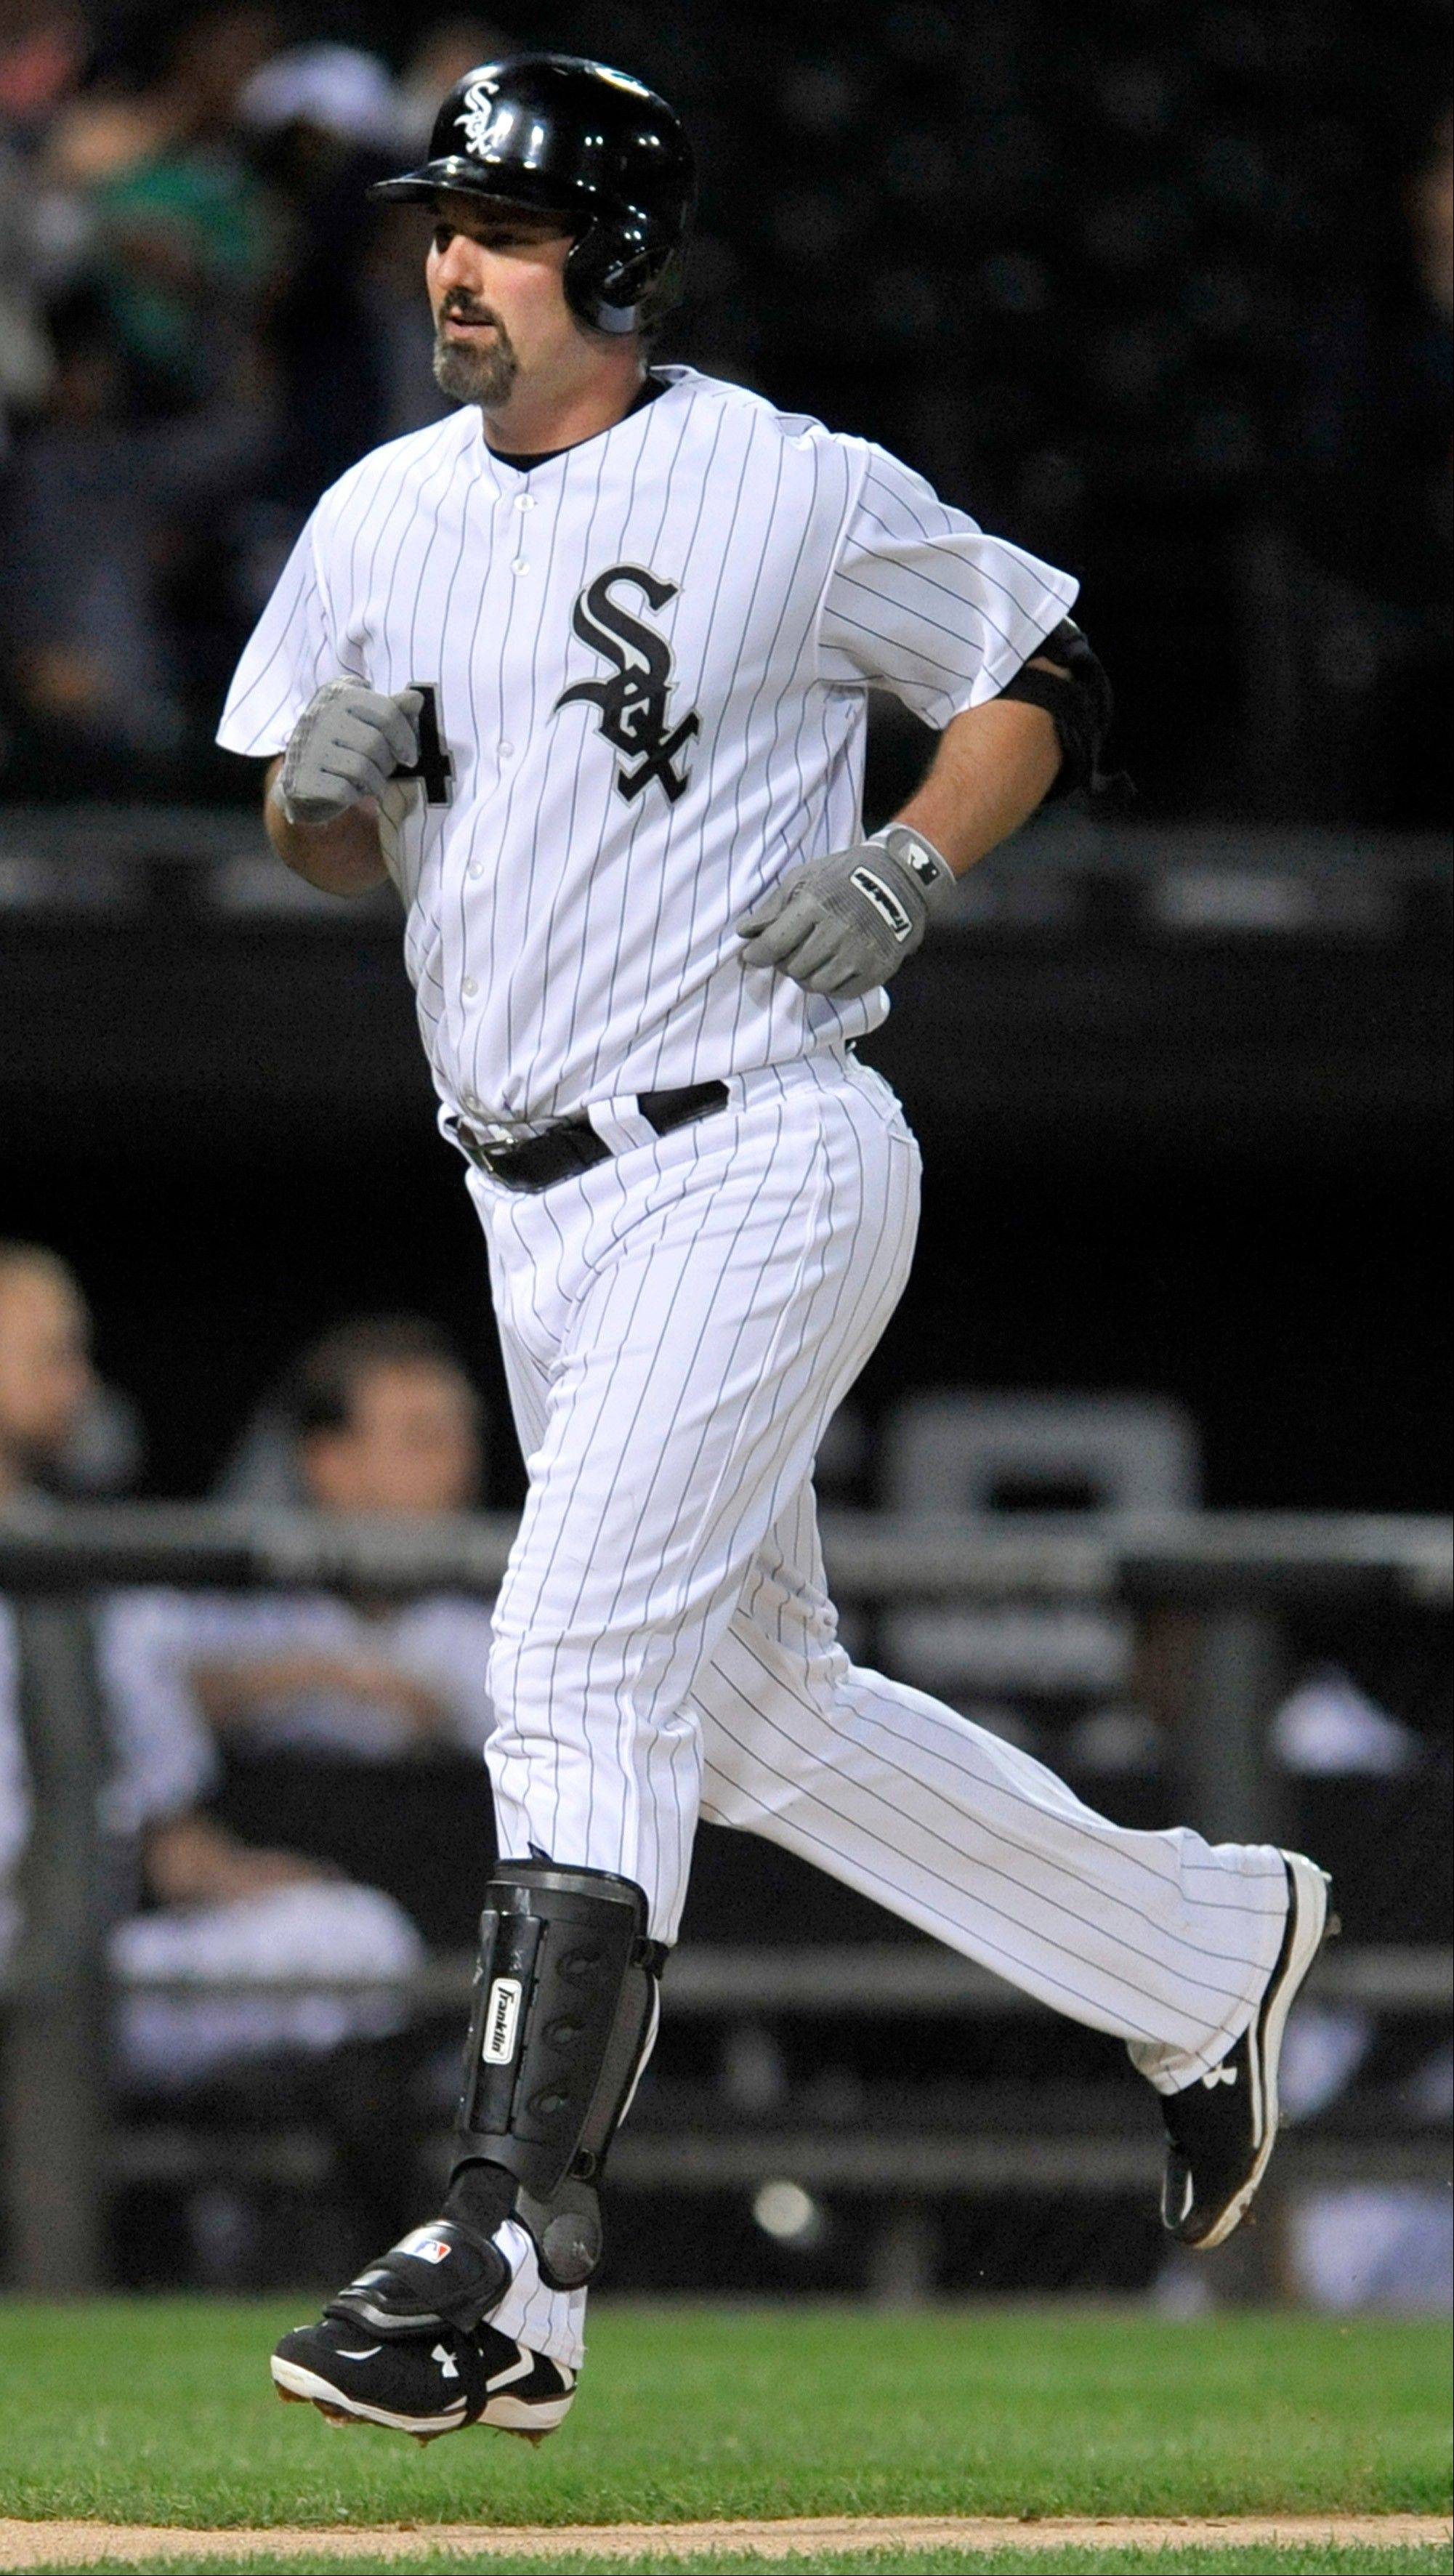 Paul Konerko will be remembered as one of the most prolific offensive players the White Sox organization has ever known.